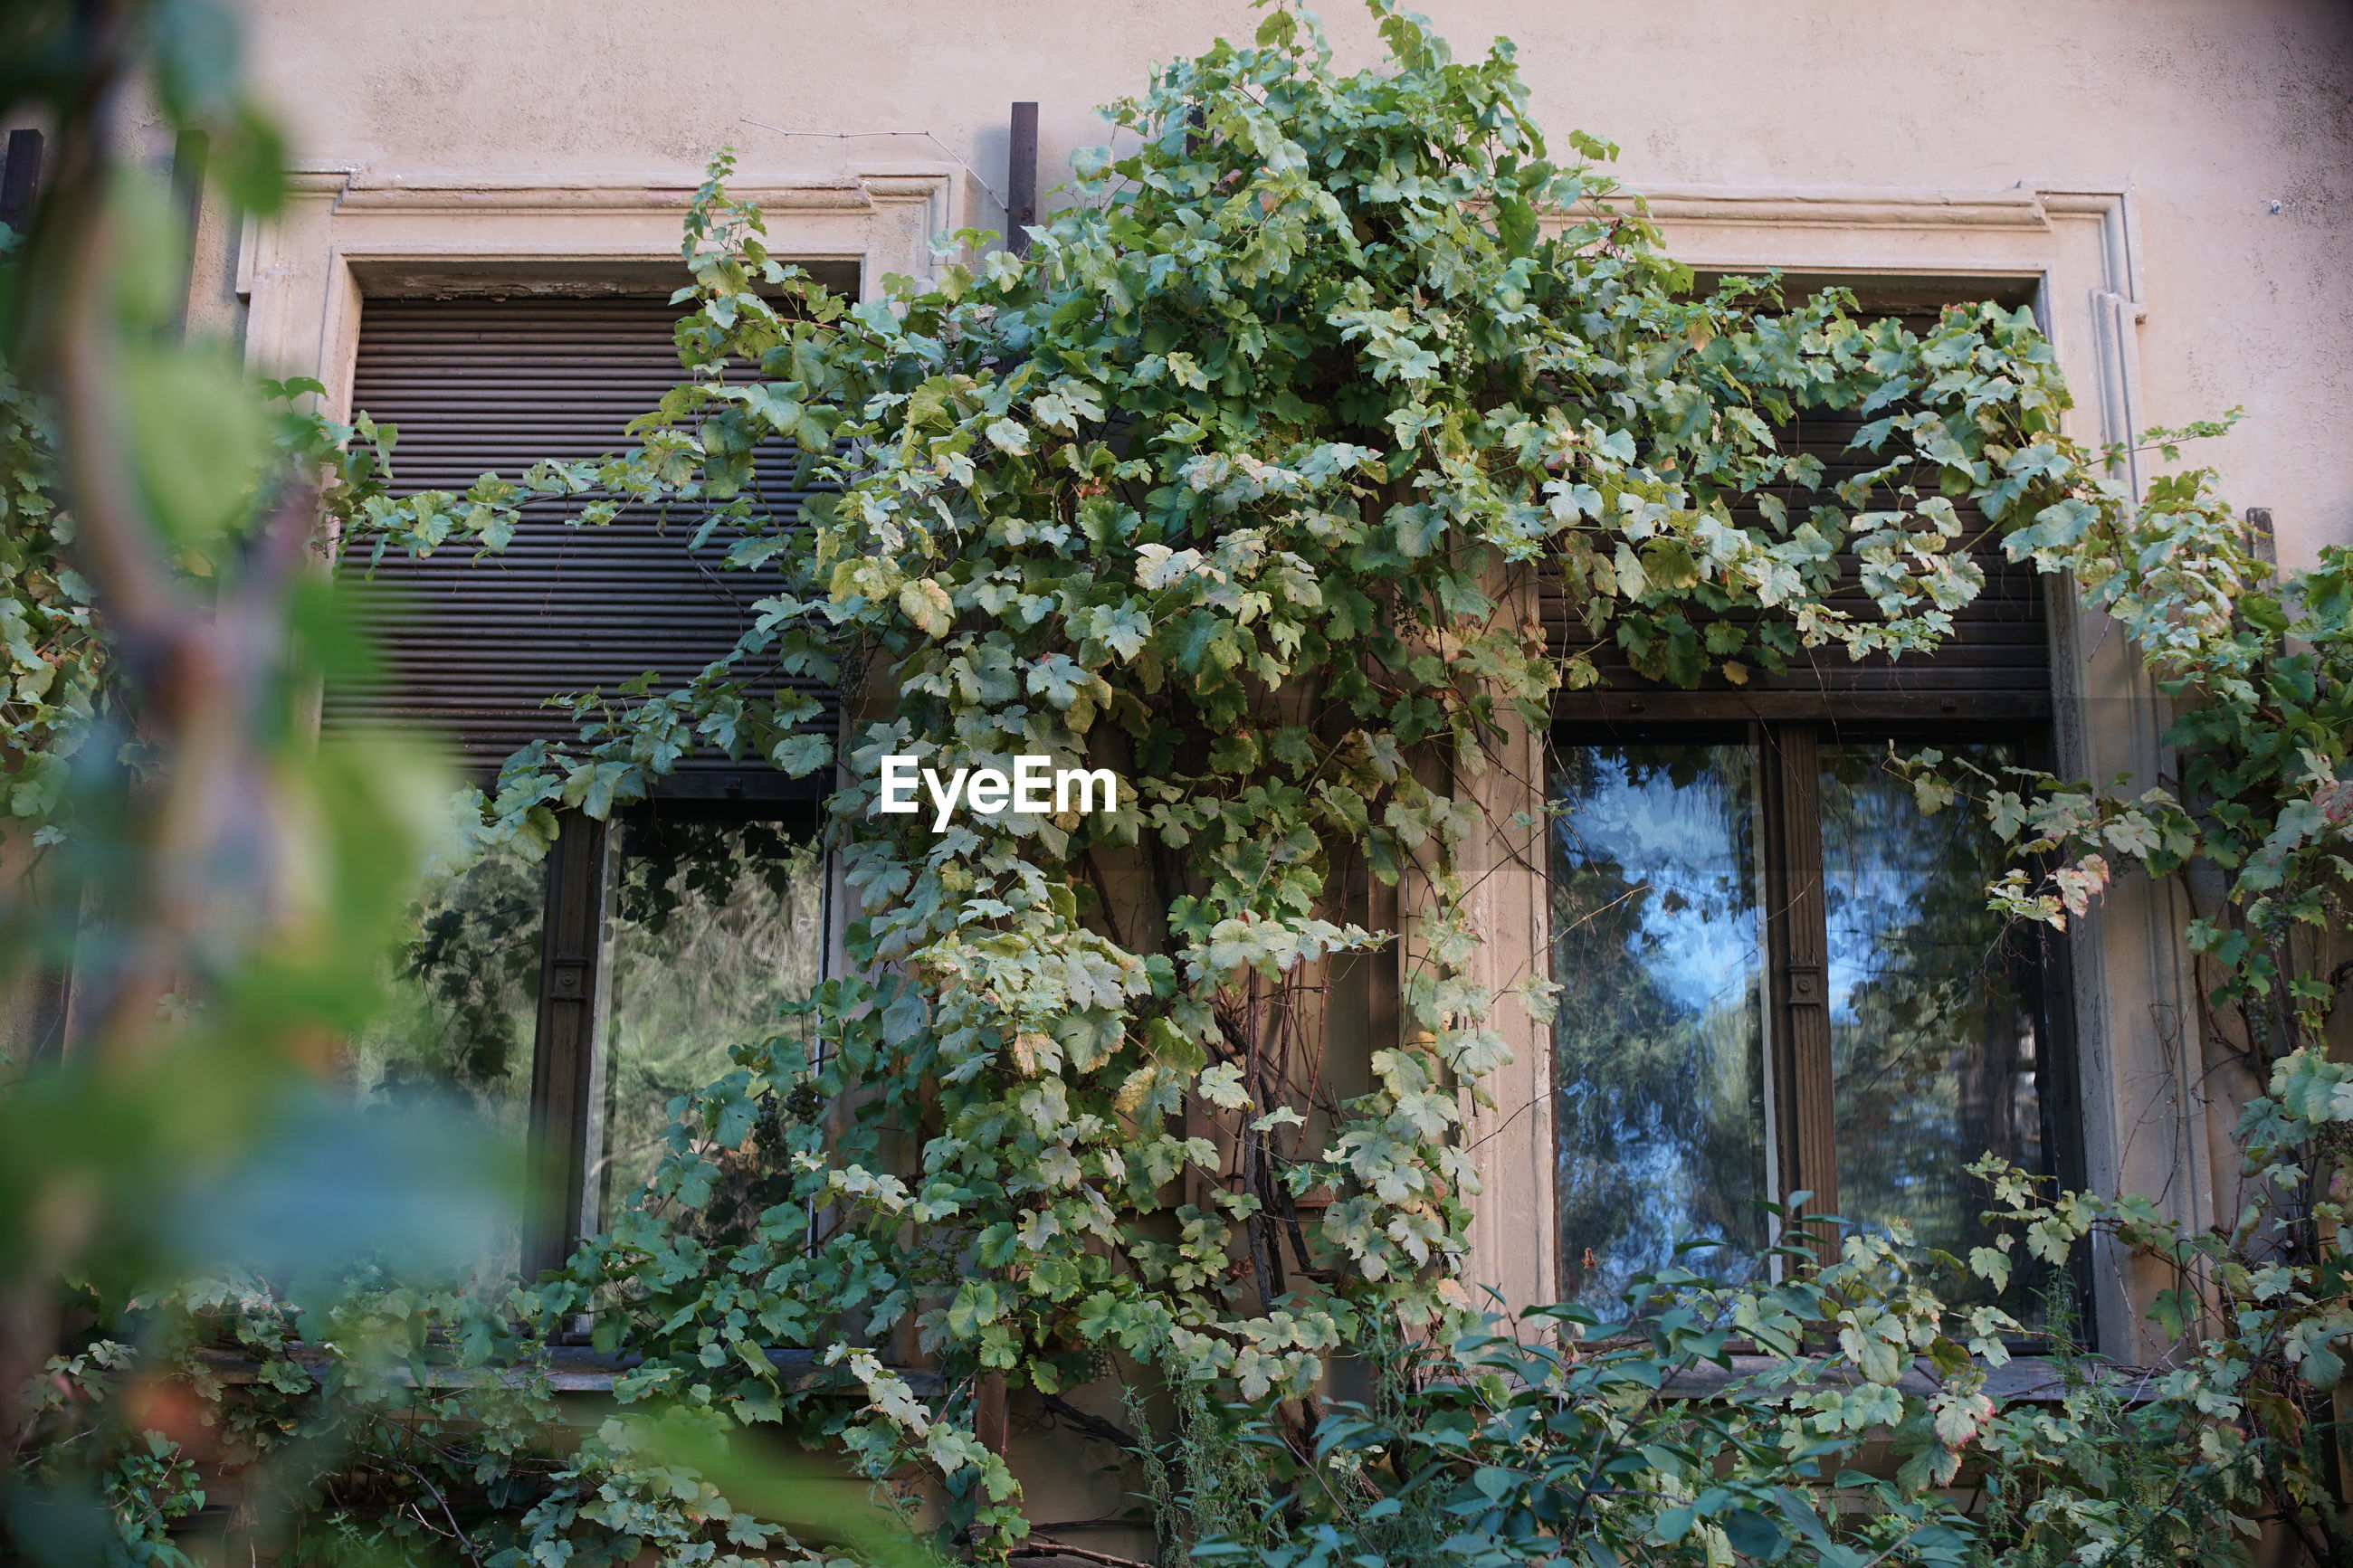 LOW ANGLE VIEW OF IVY GROWING ON TREE OUTSIDE BUILDING